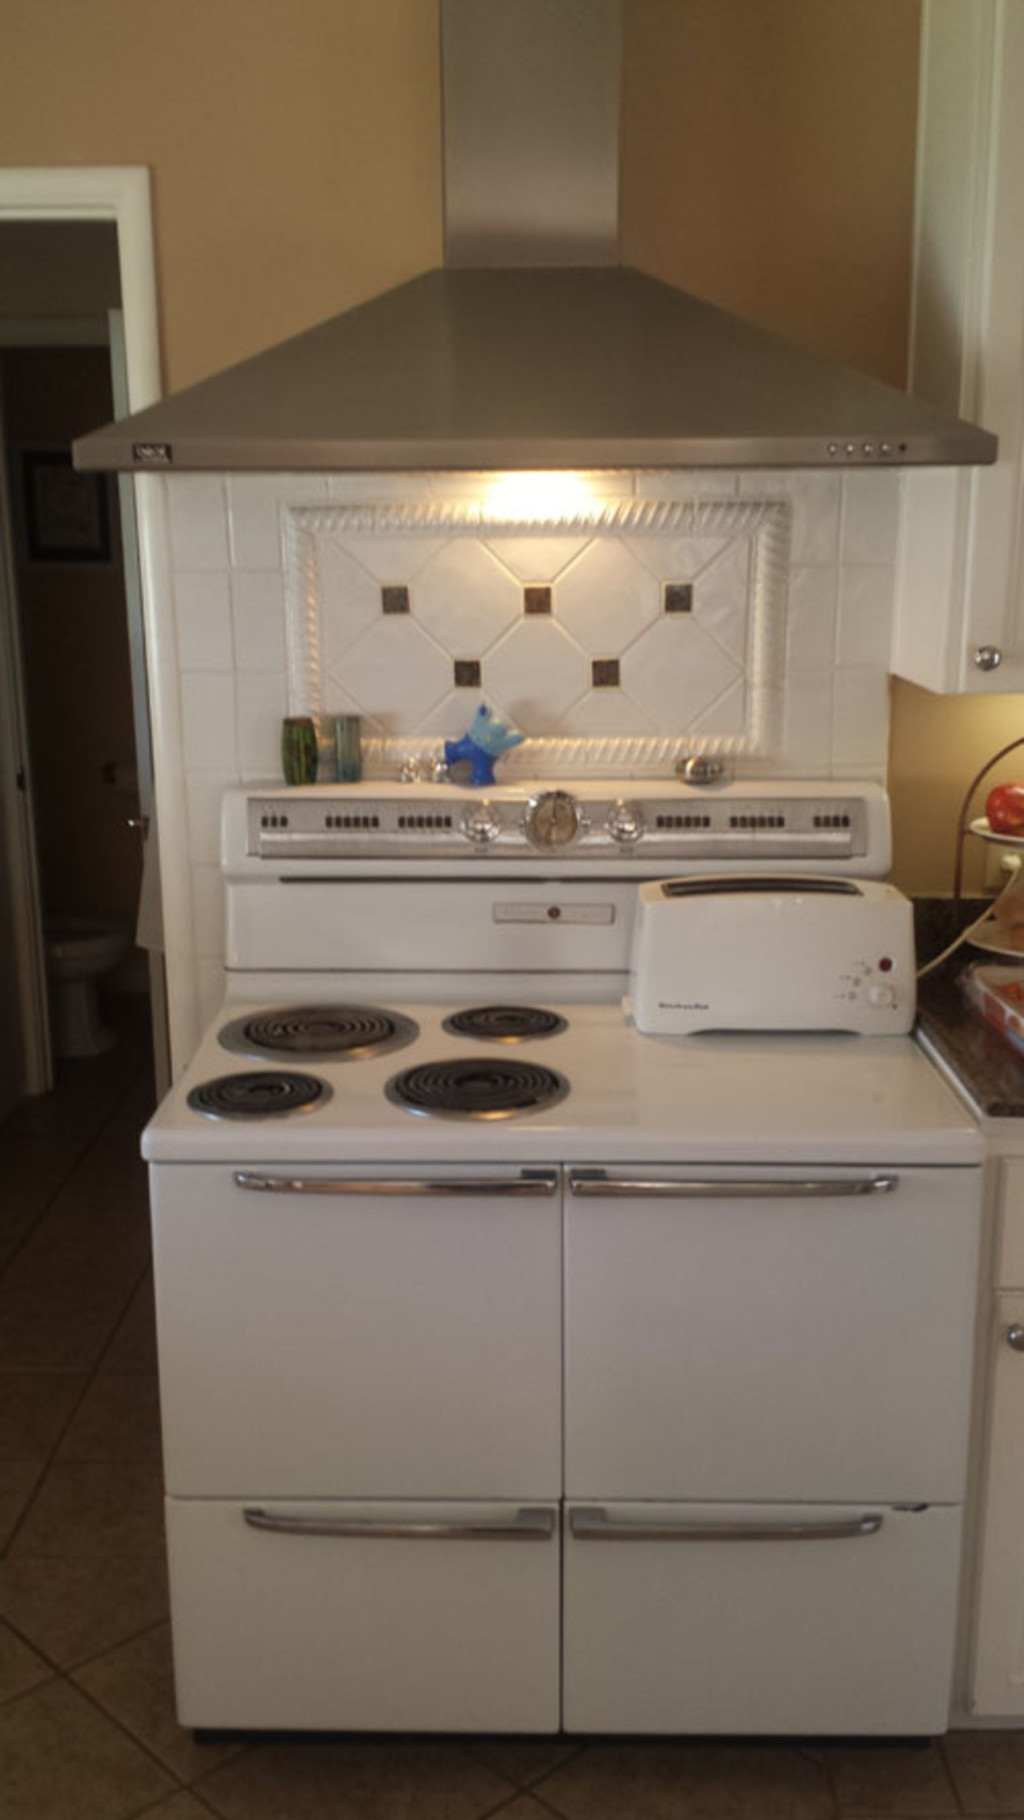 AAA Home Appliance Repair - Stovetop/Oven